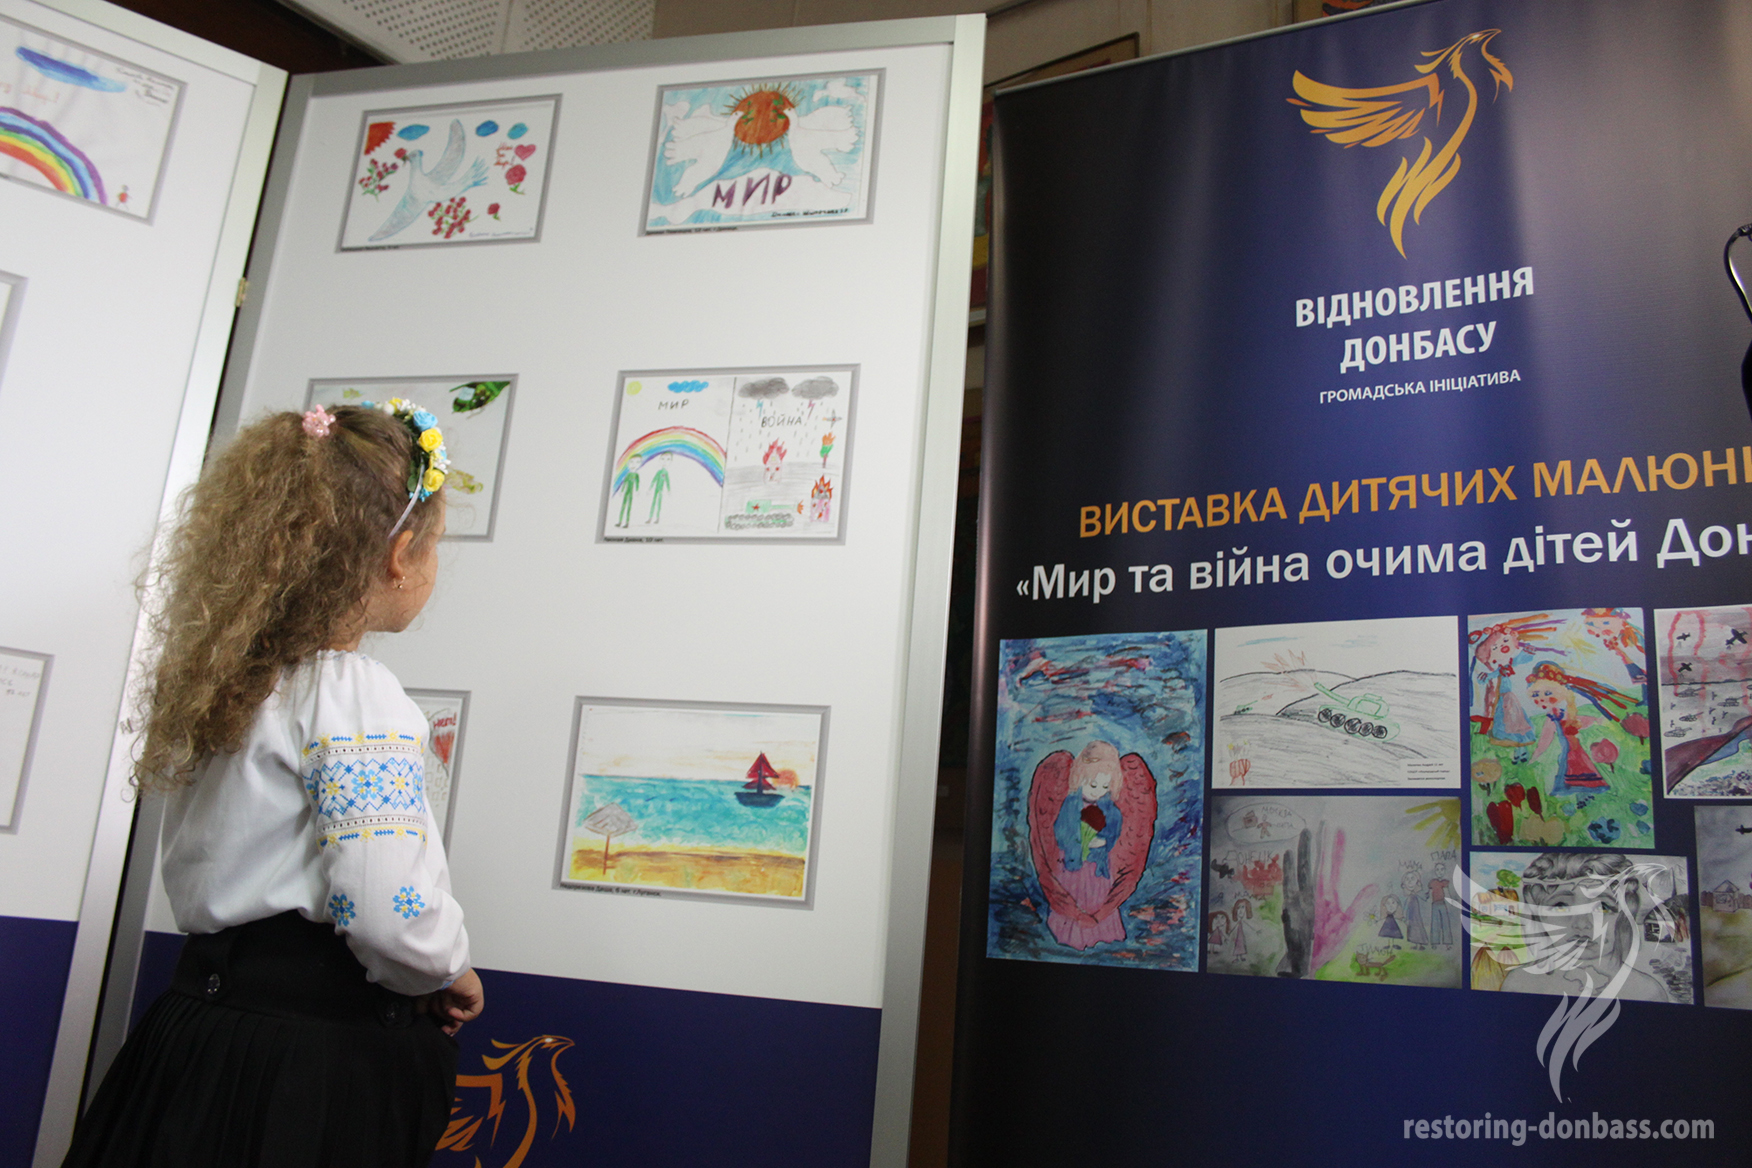 Pupil of the Zhytomyr center of children's creativity and youth is looking contest works